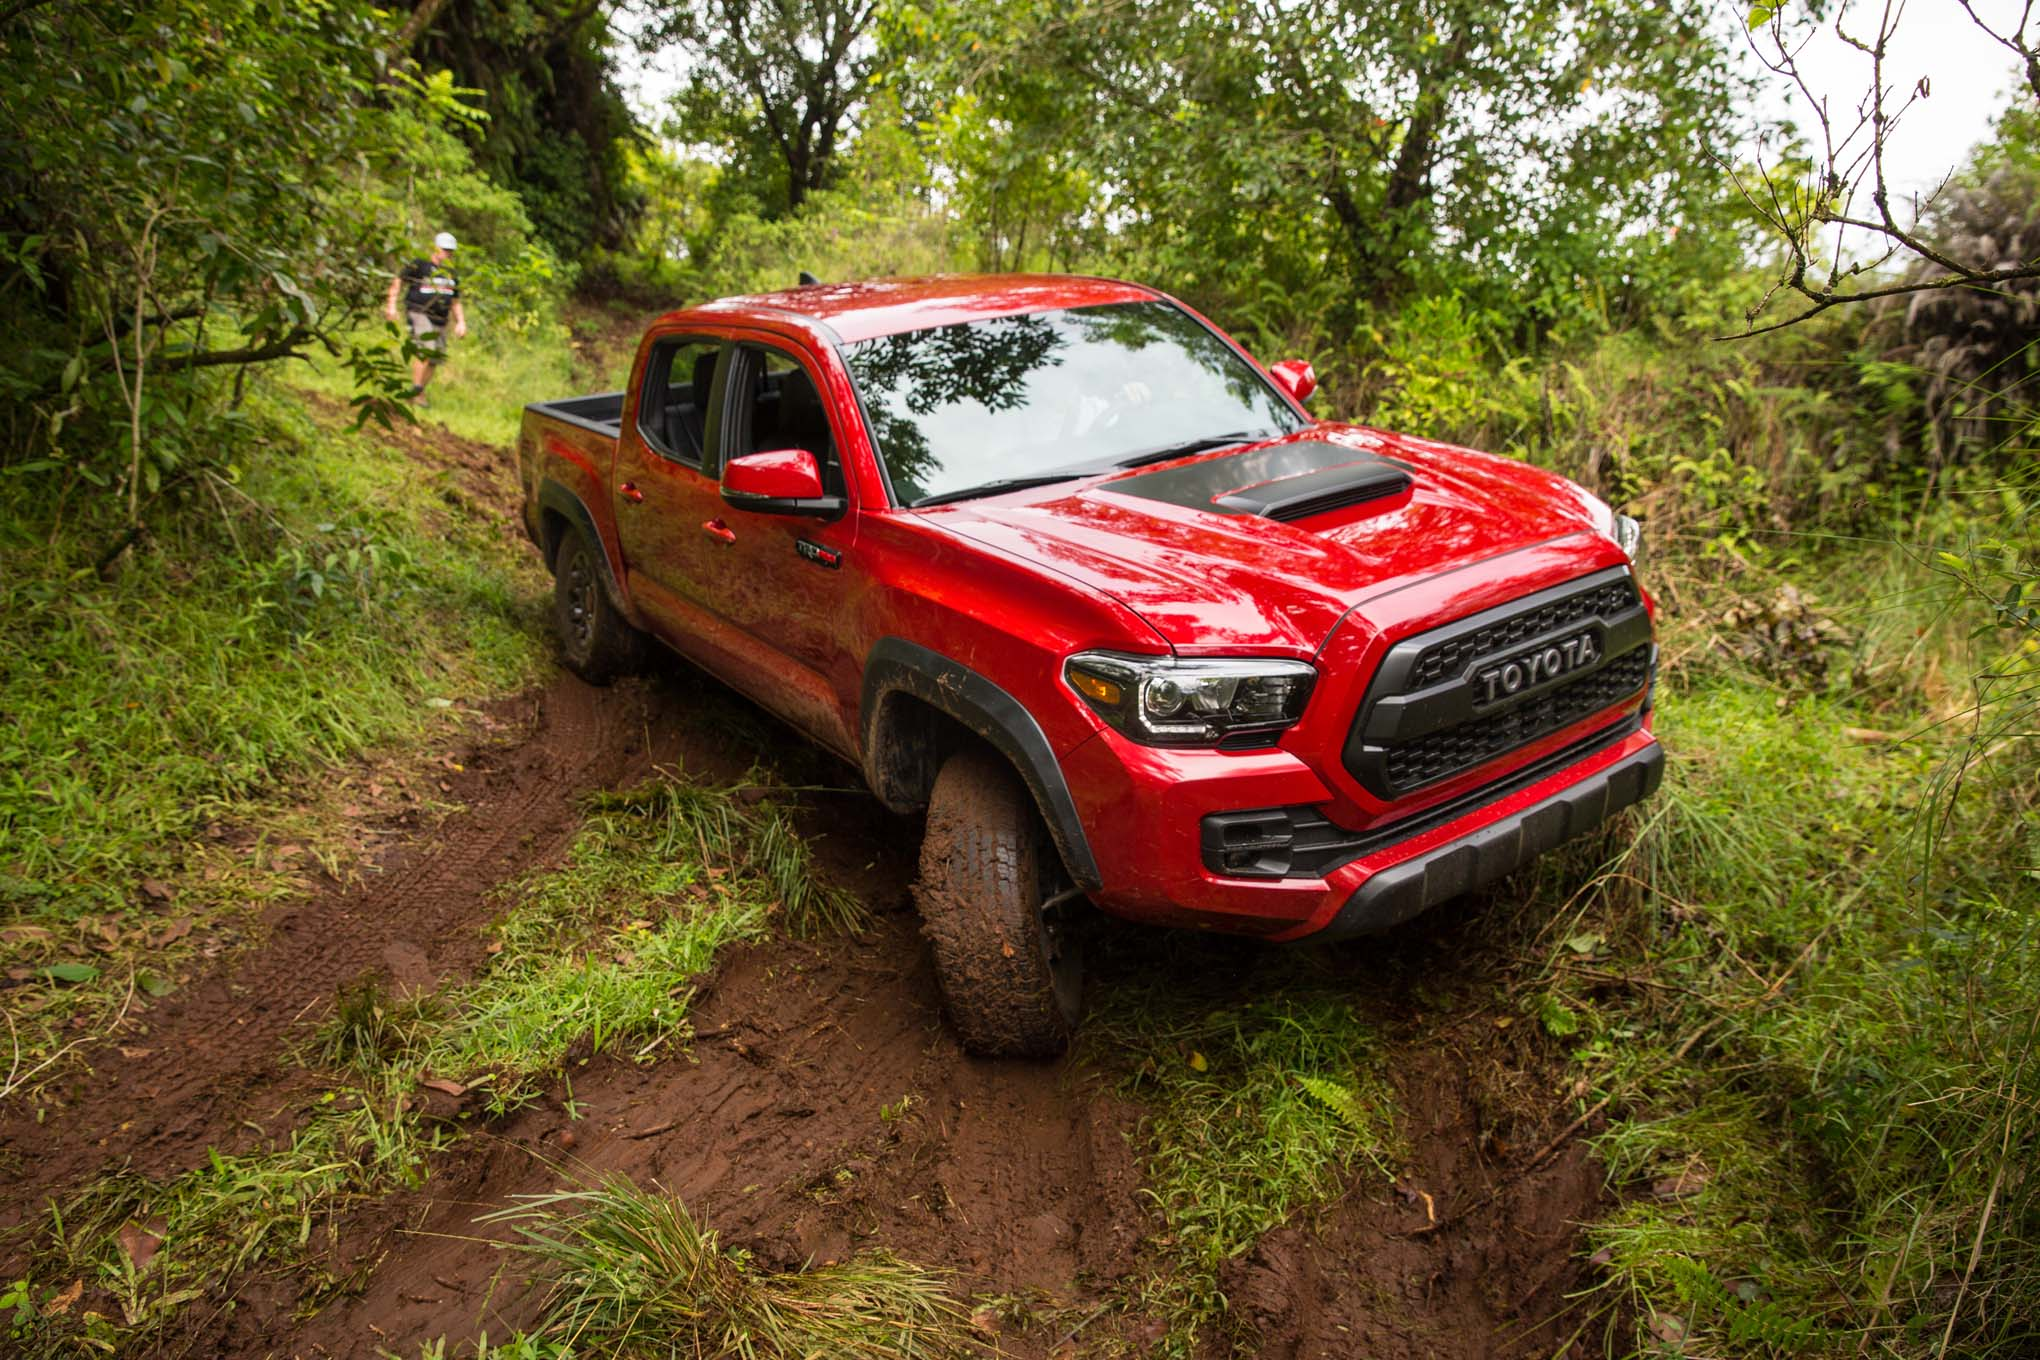 2017 Toyota Tacoma 4x4 TRD Pro Front Three Quarter Off Road 04